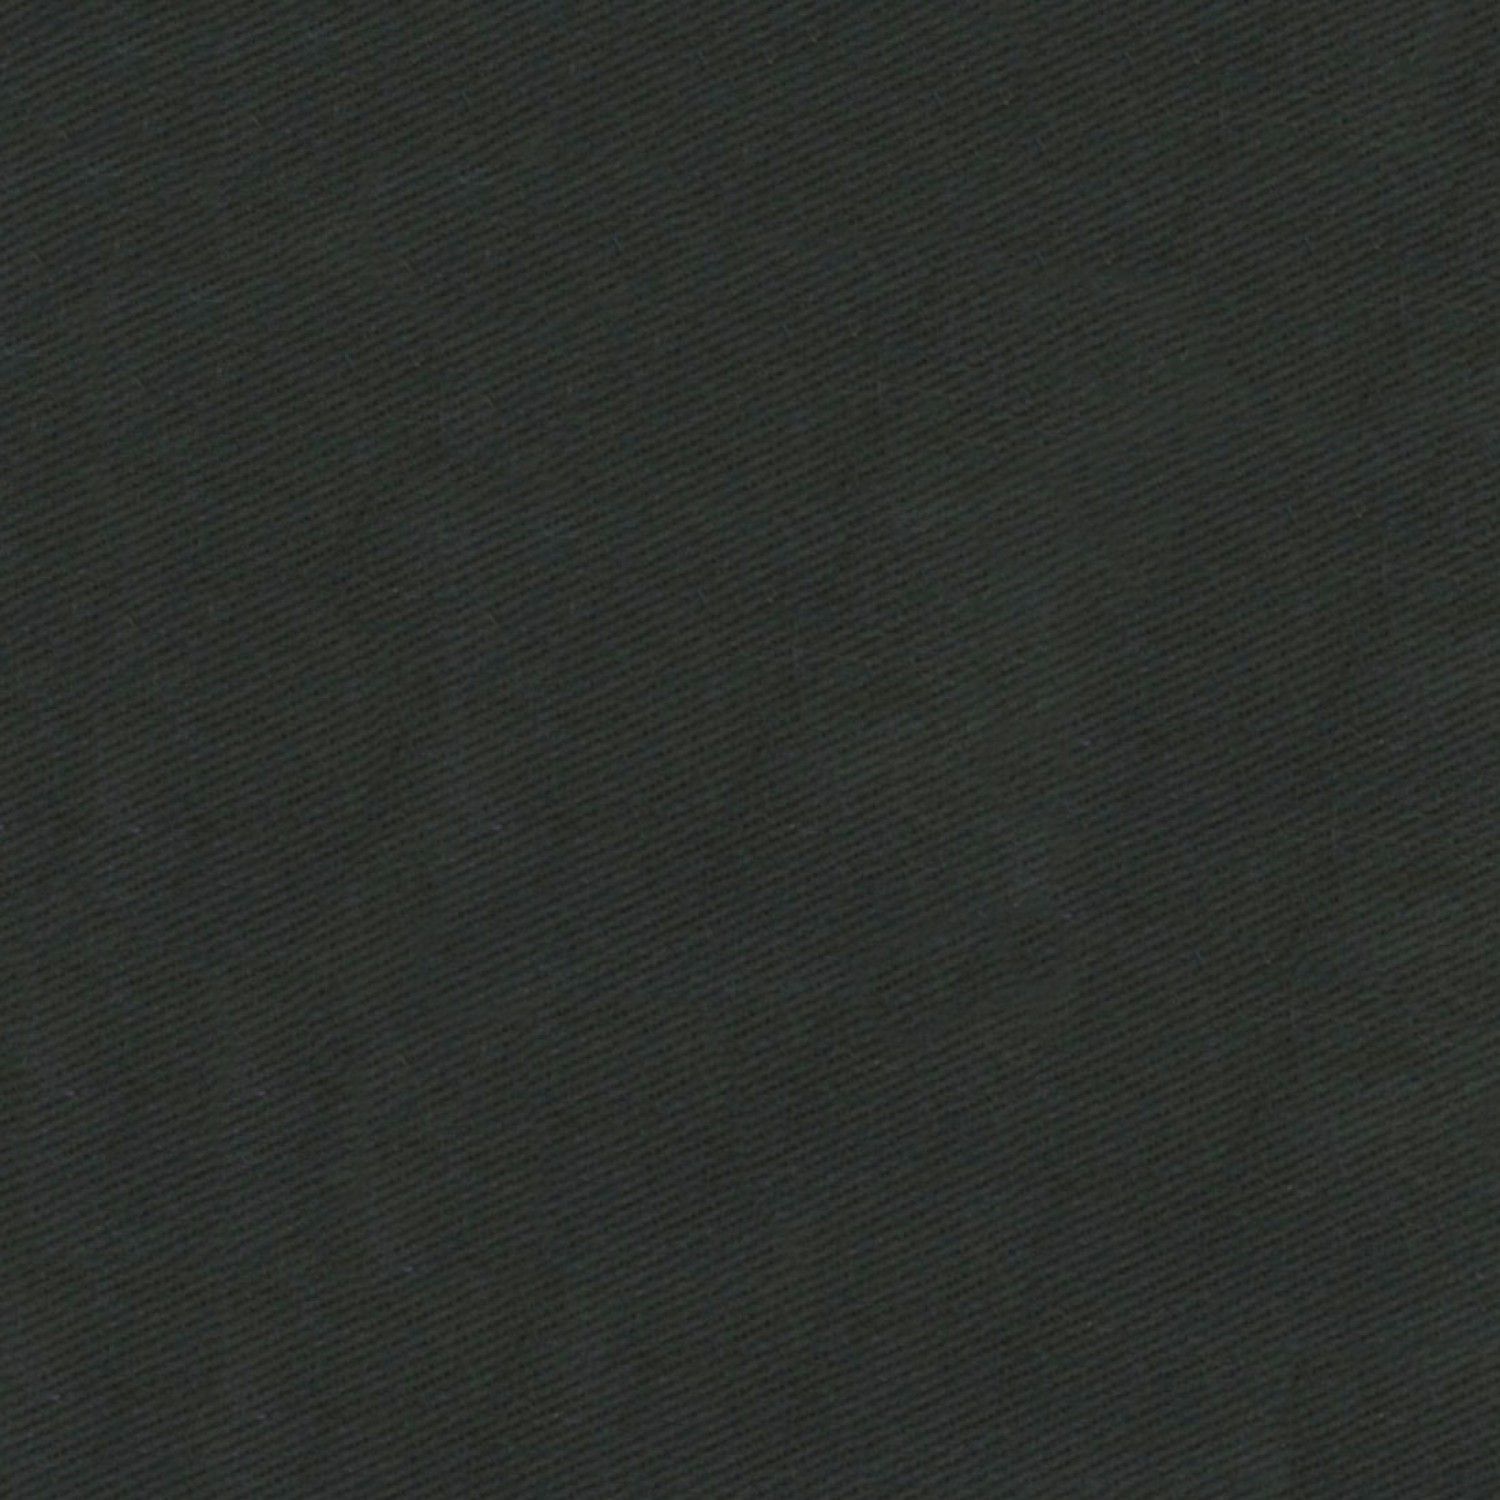 "Milestone Twill Black Fabric 7oz - 60"" Wide x Per Yard"